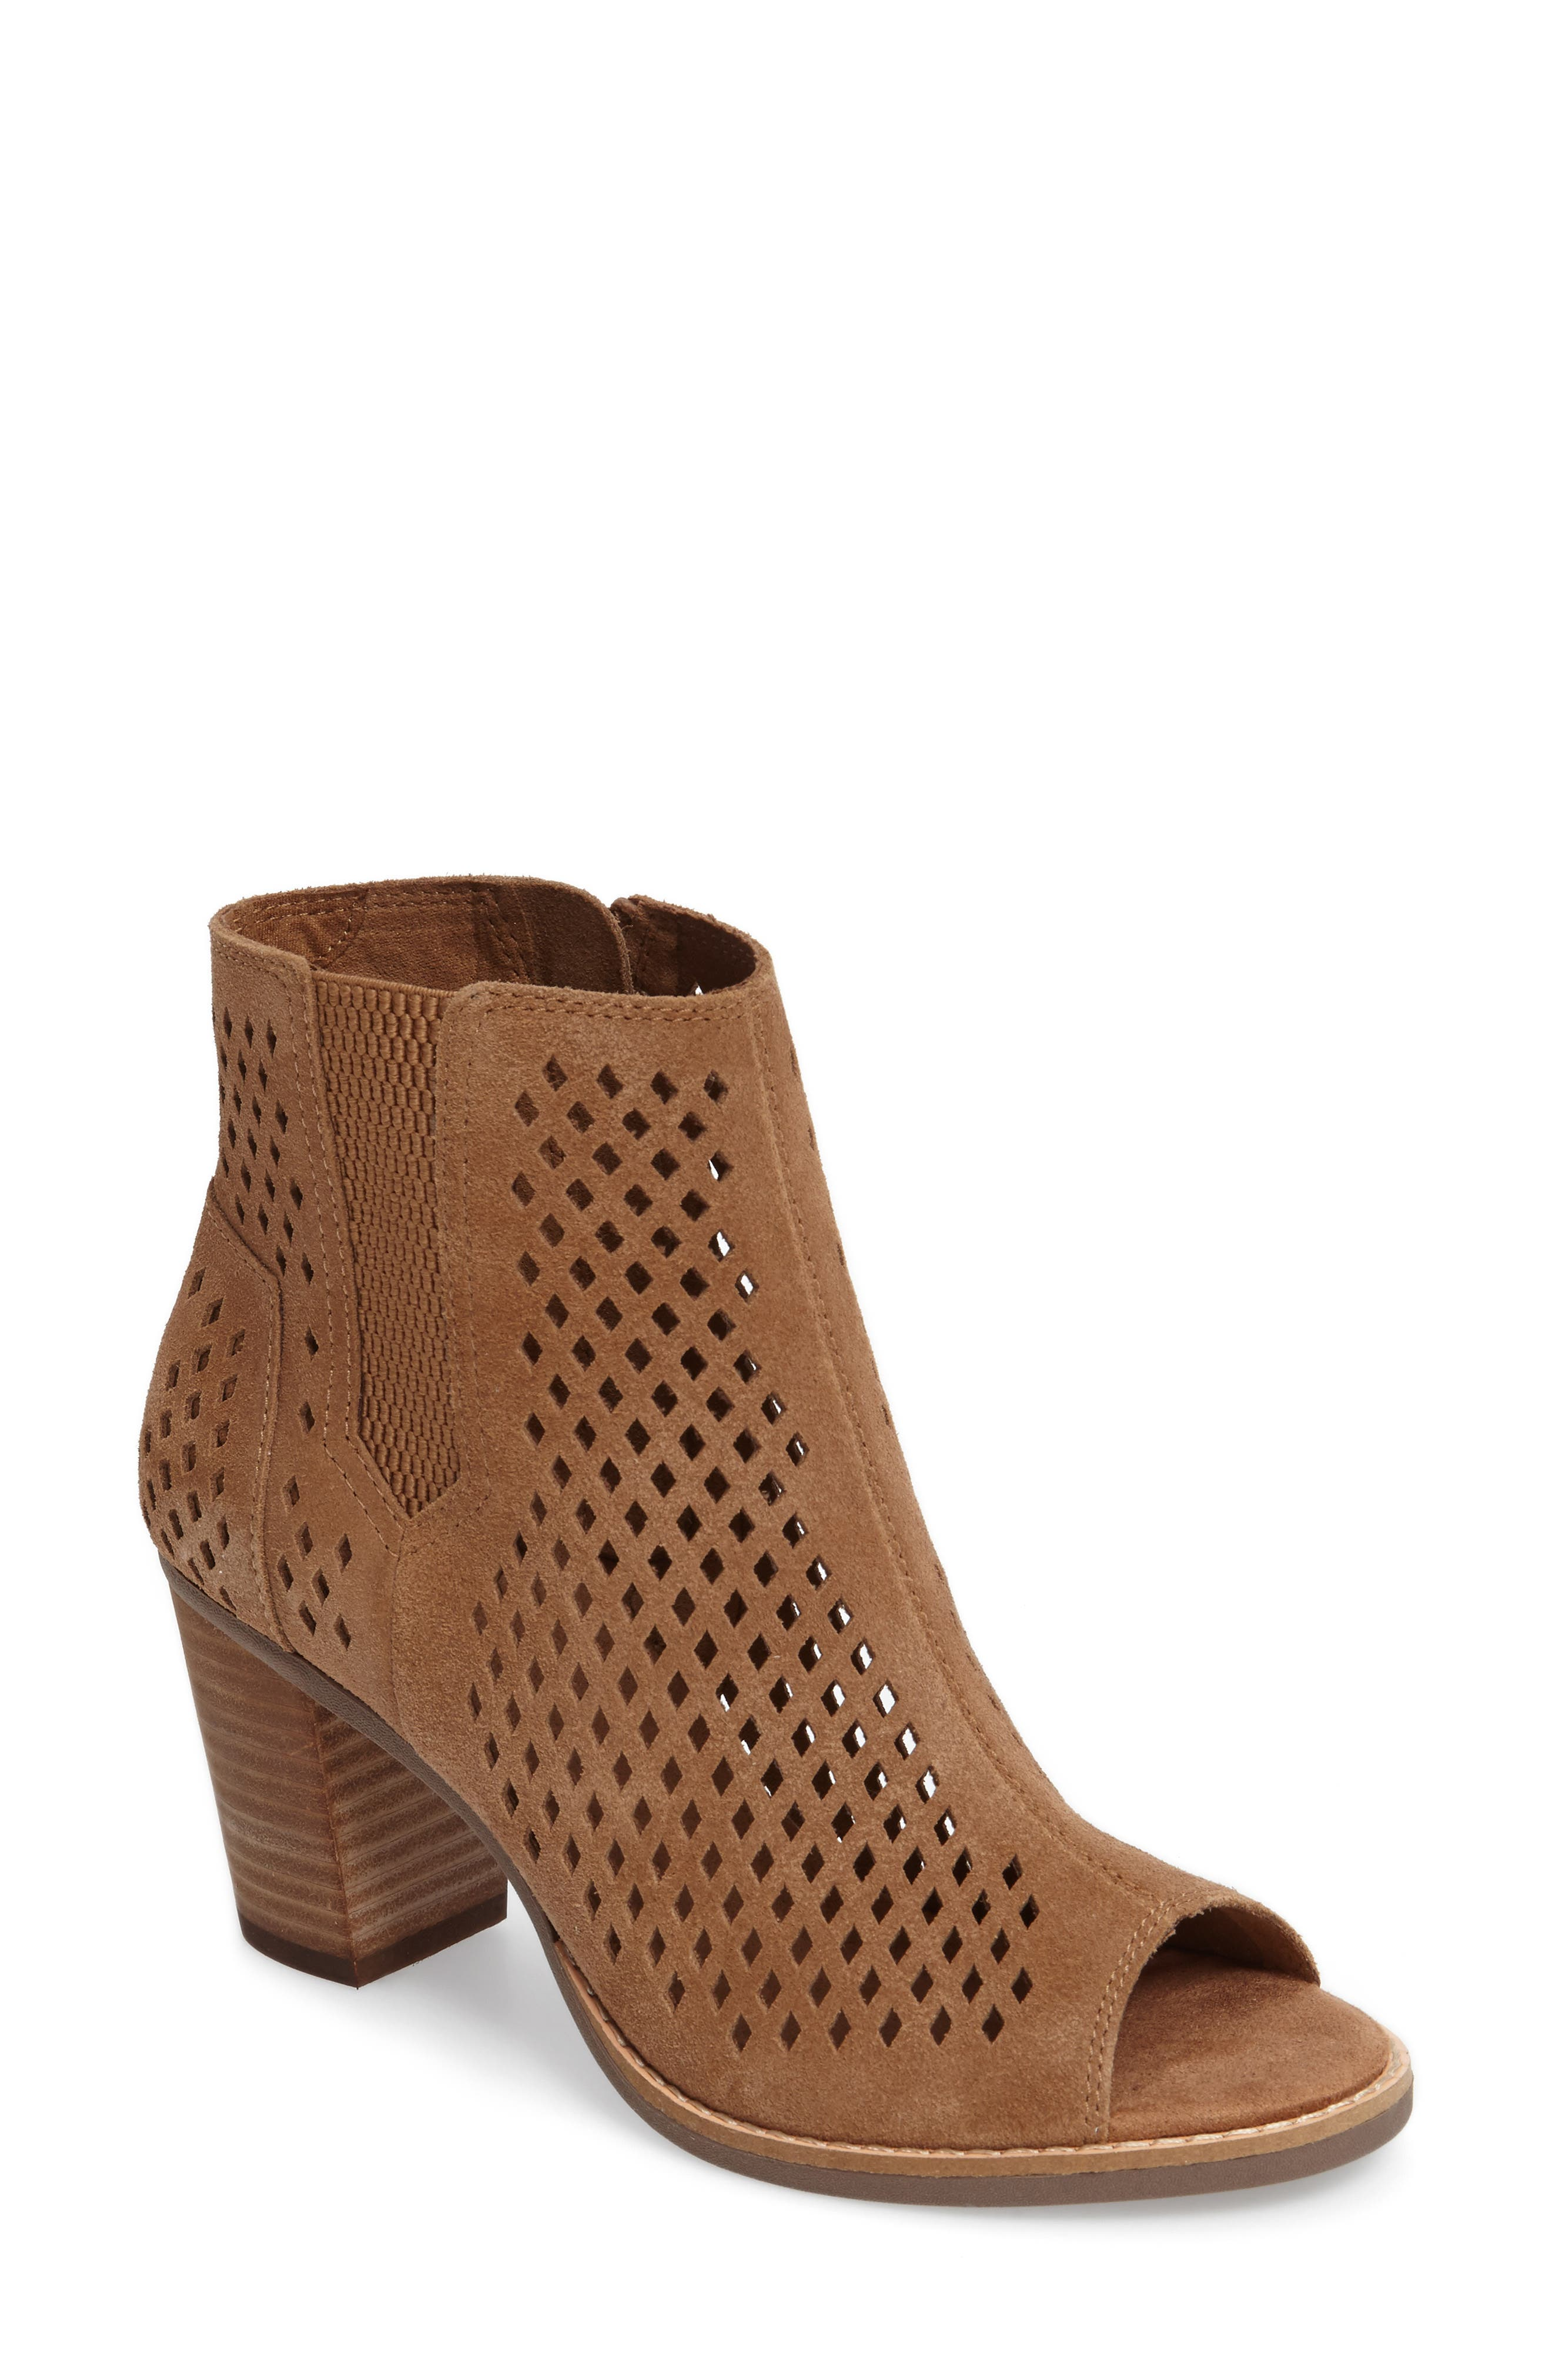 Majorca Peep Toe Bootie,                         Main,                         color, Toffee Suede